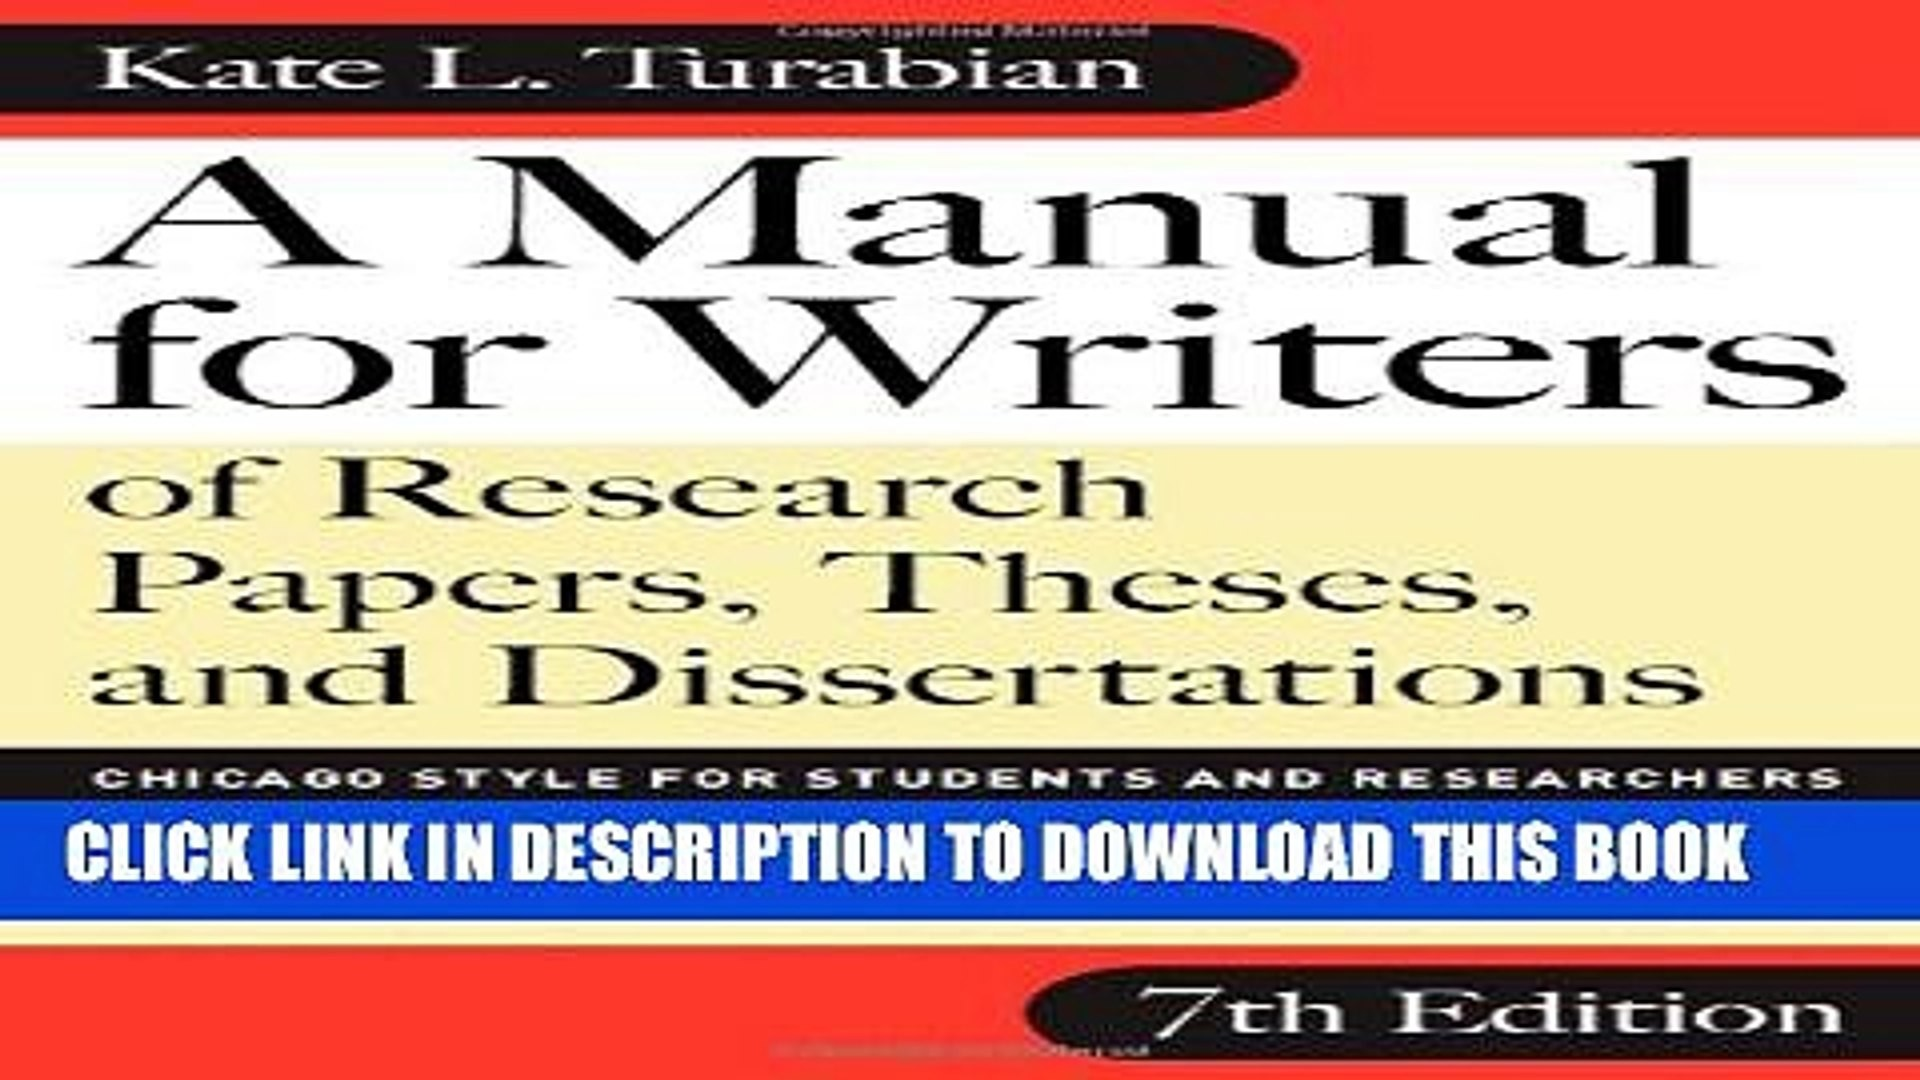 013 Manual For Writers Of Research Papers Theses And Dissertations Chicago Style Students Paper X1080 Rare A 1920